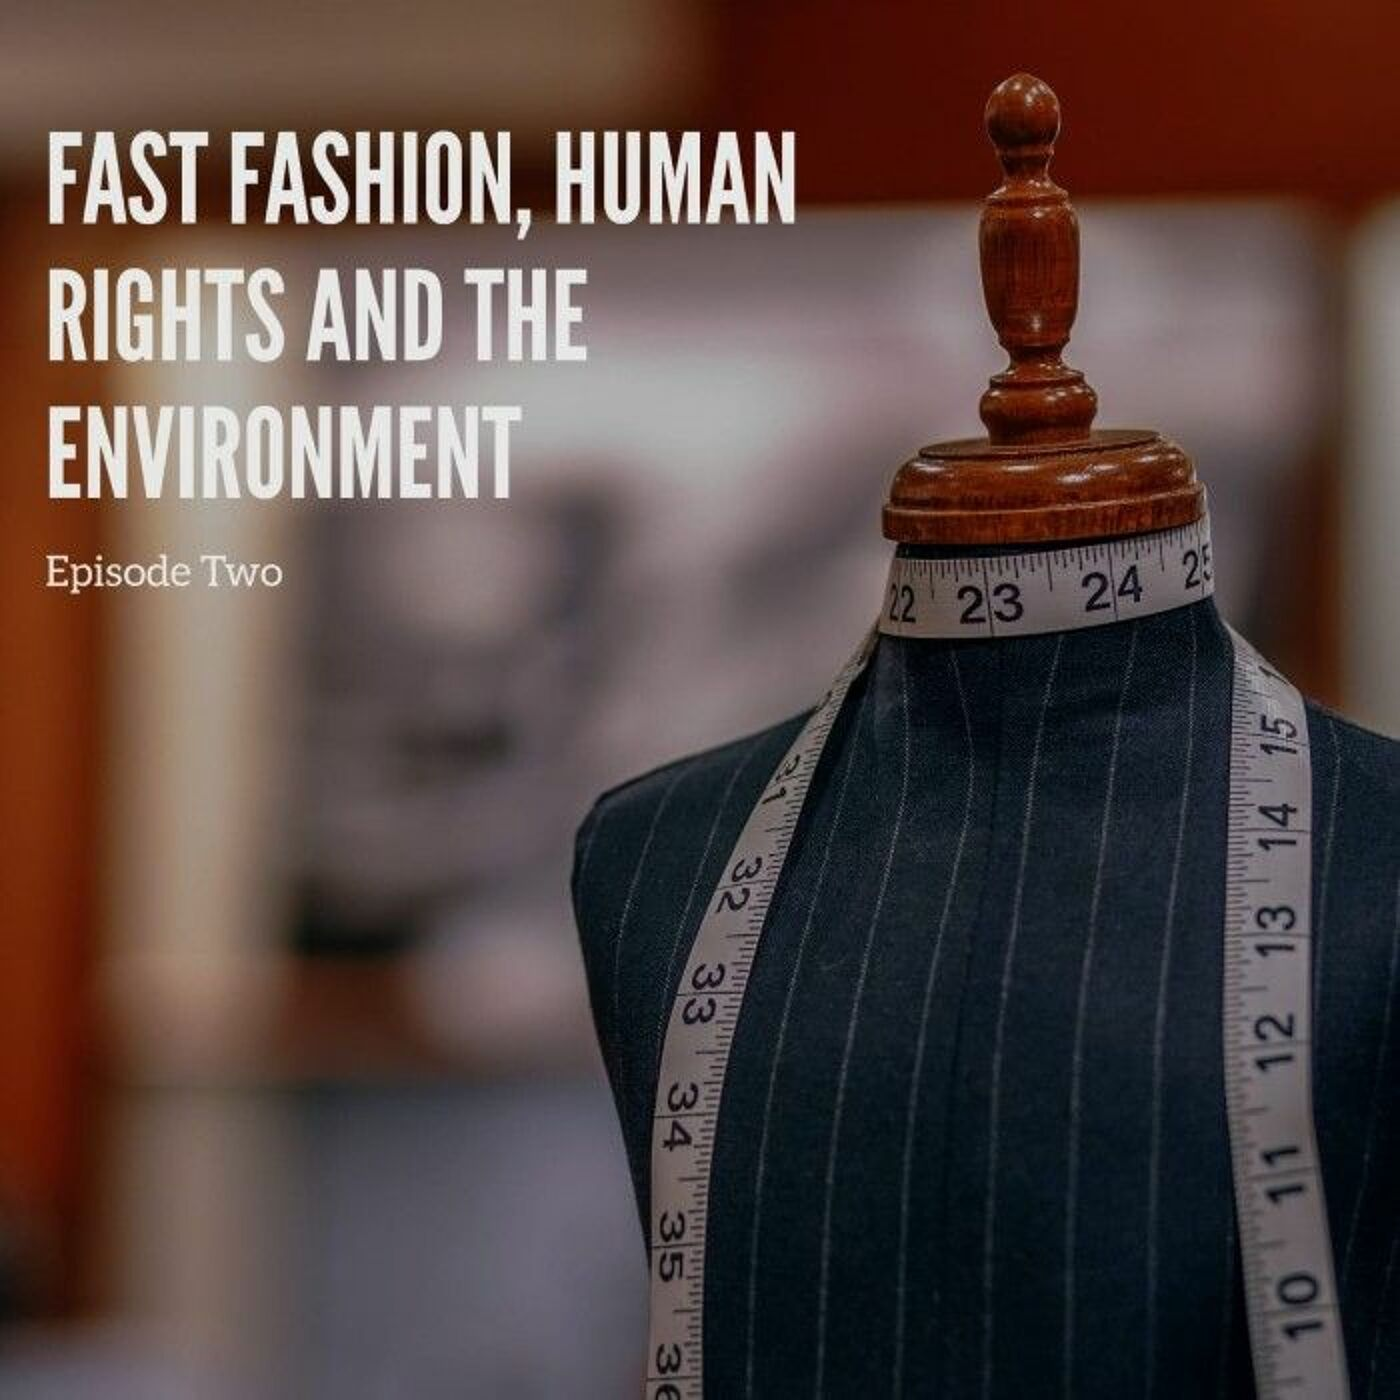 Fast fashion, human rights and the environment